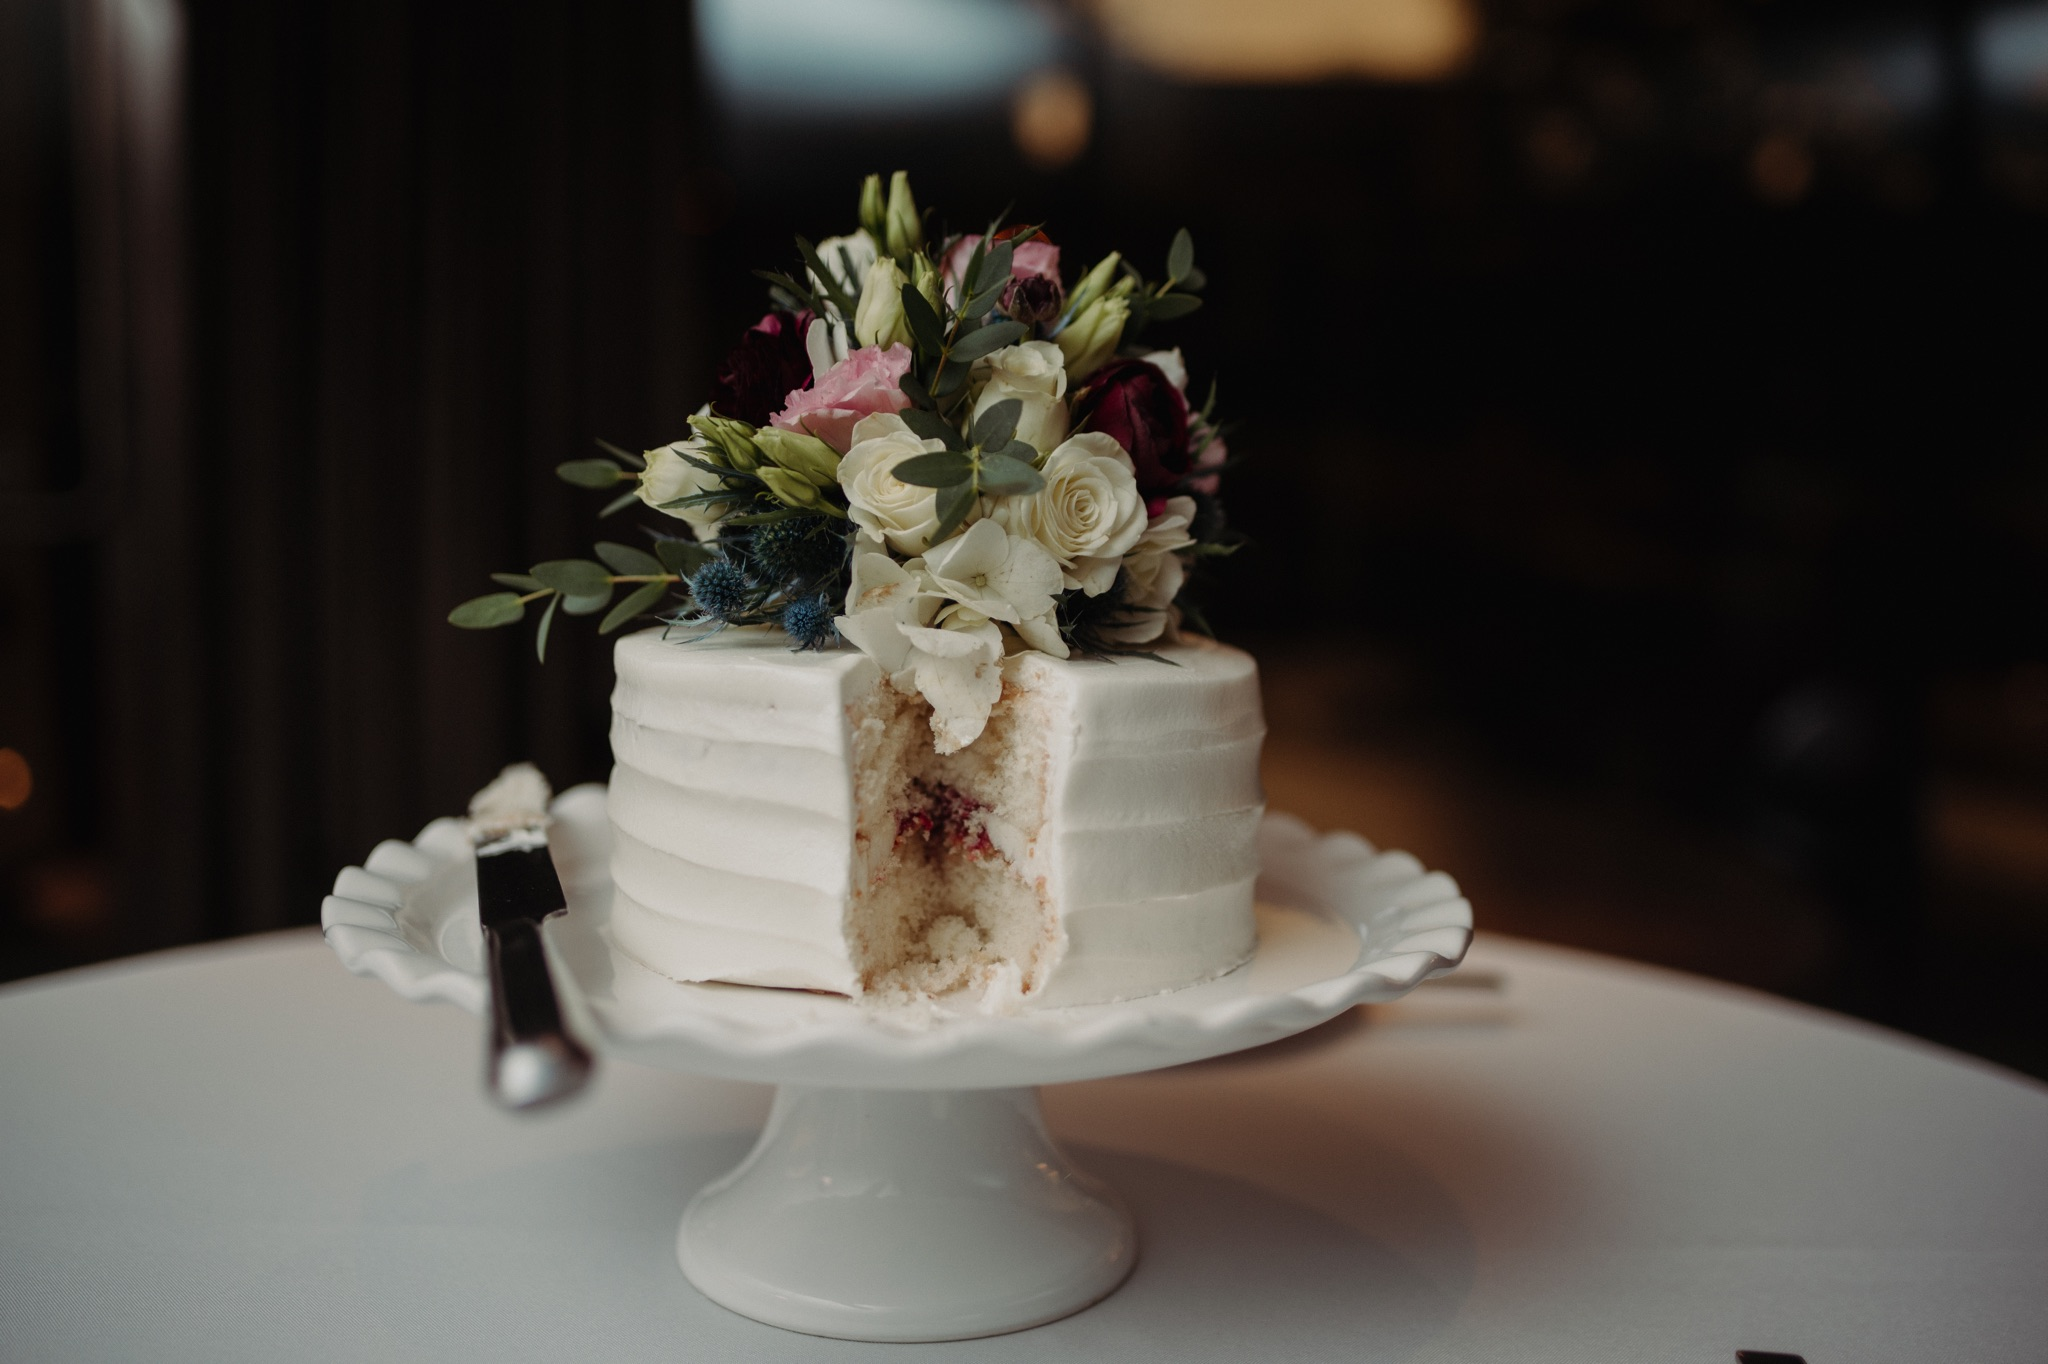 white cake with flowers on top on a raised cake plate walker art center wedding